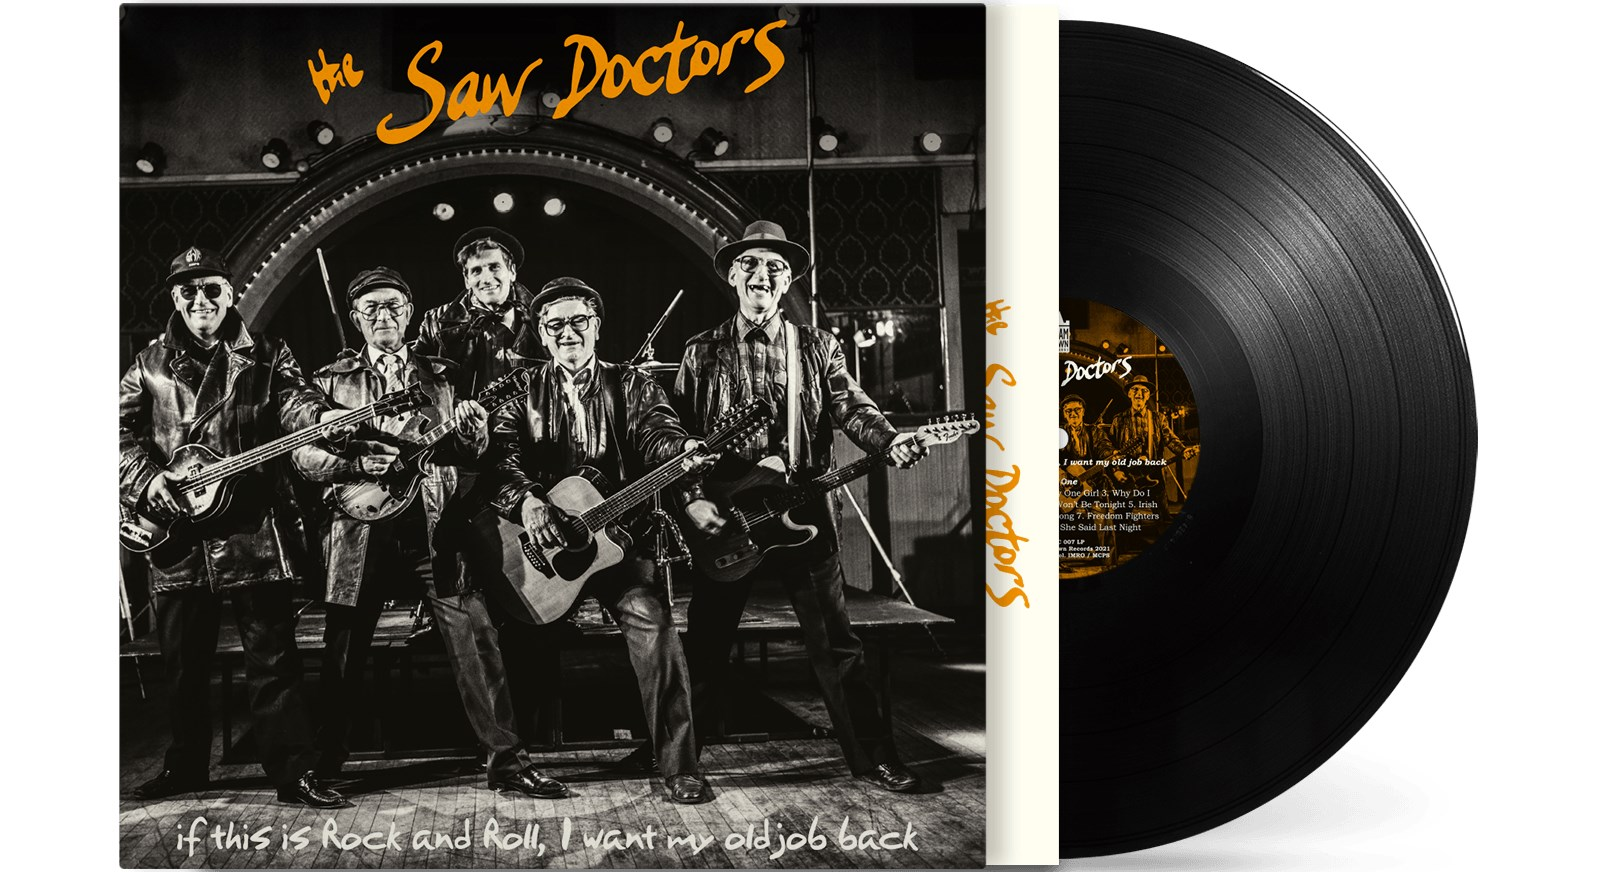 Saw Doctors Release Limited edition vinyl LP of The Saw Doctors debut album to celebrate the 30th anniversary